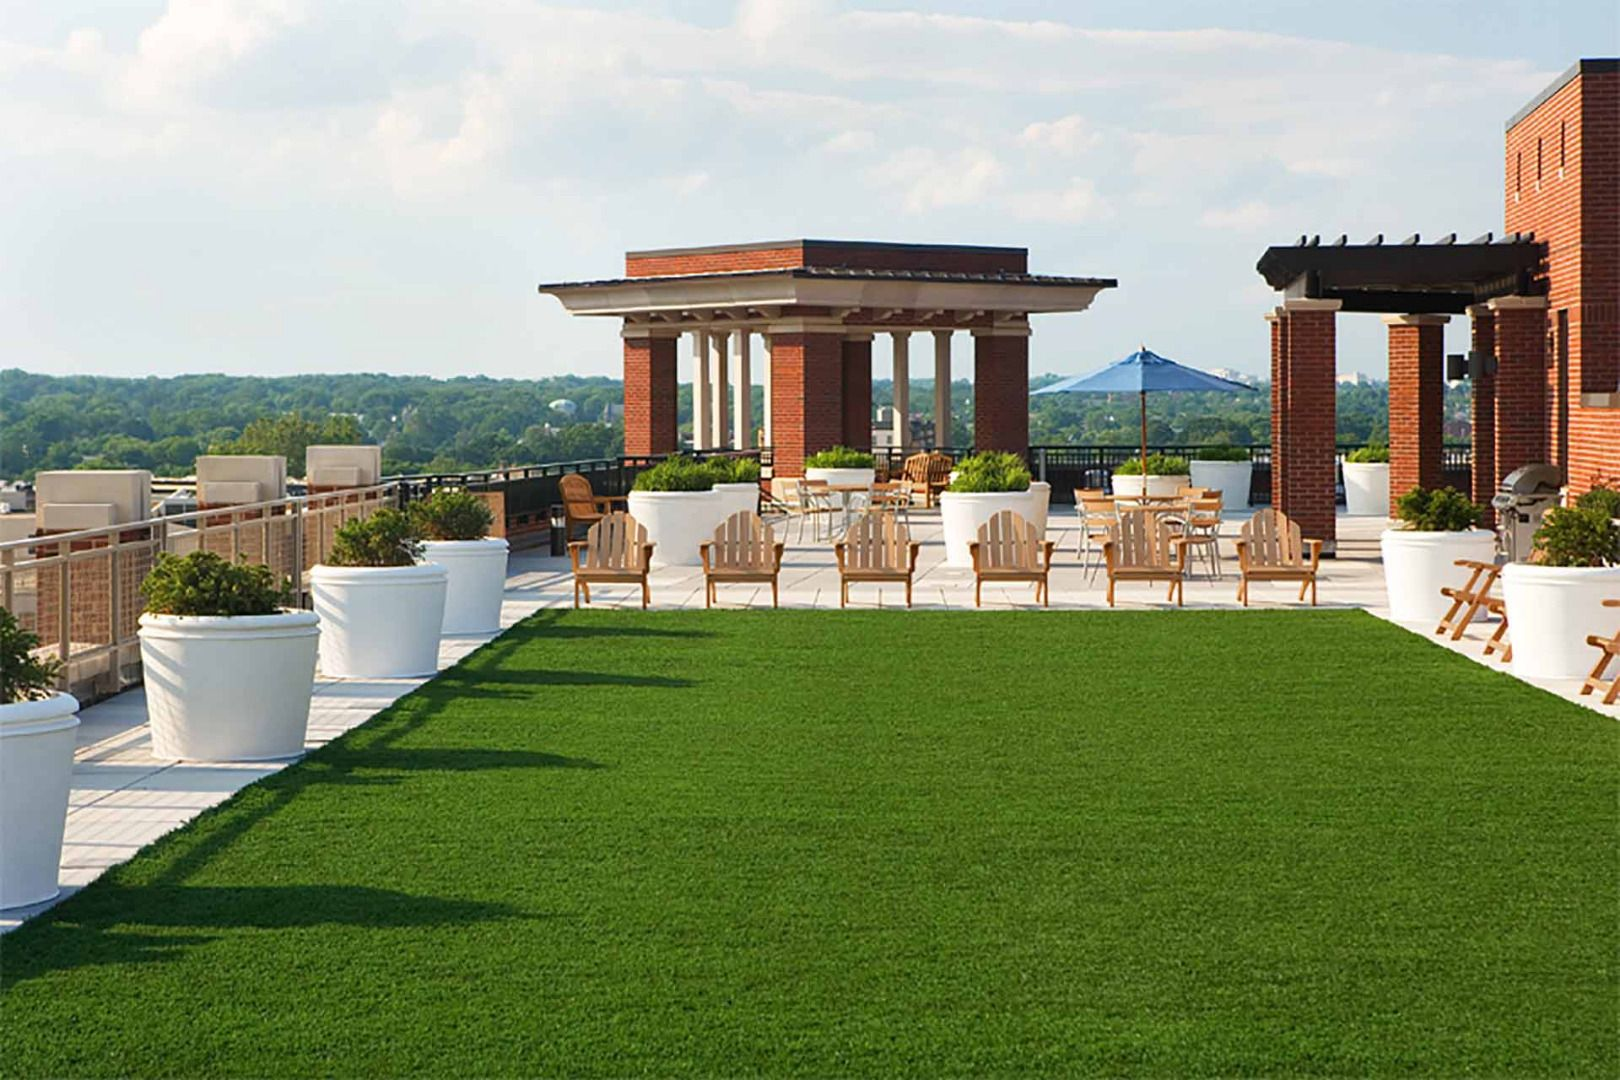 Rooftop area with seating and greenspace